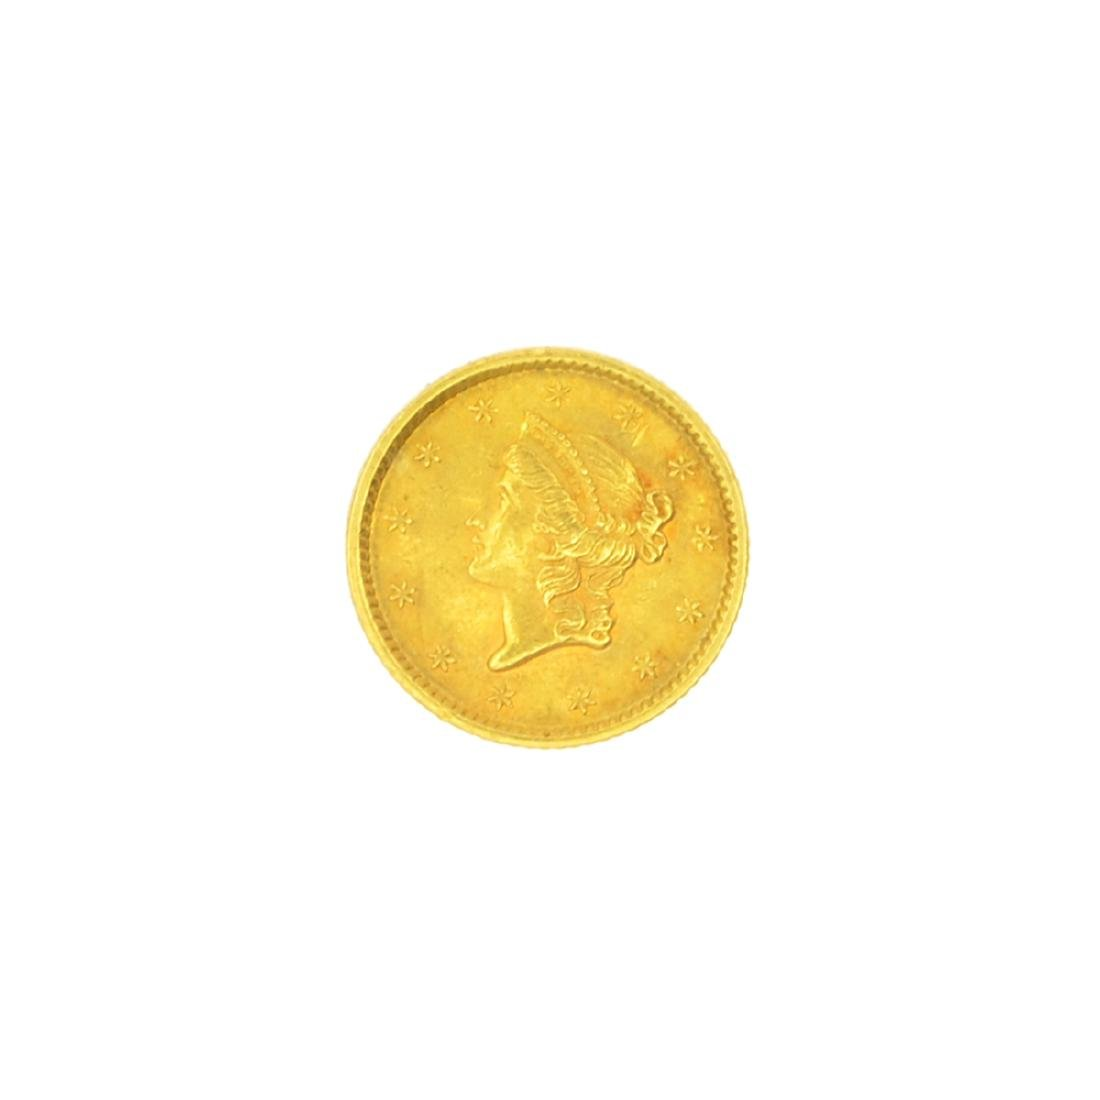 Very Rare 1852 $1 U.S. Liberty Head Gold Coin Great